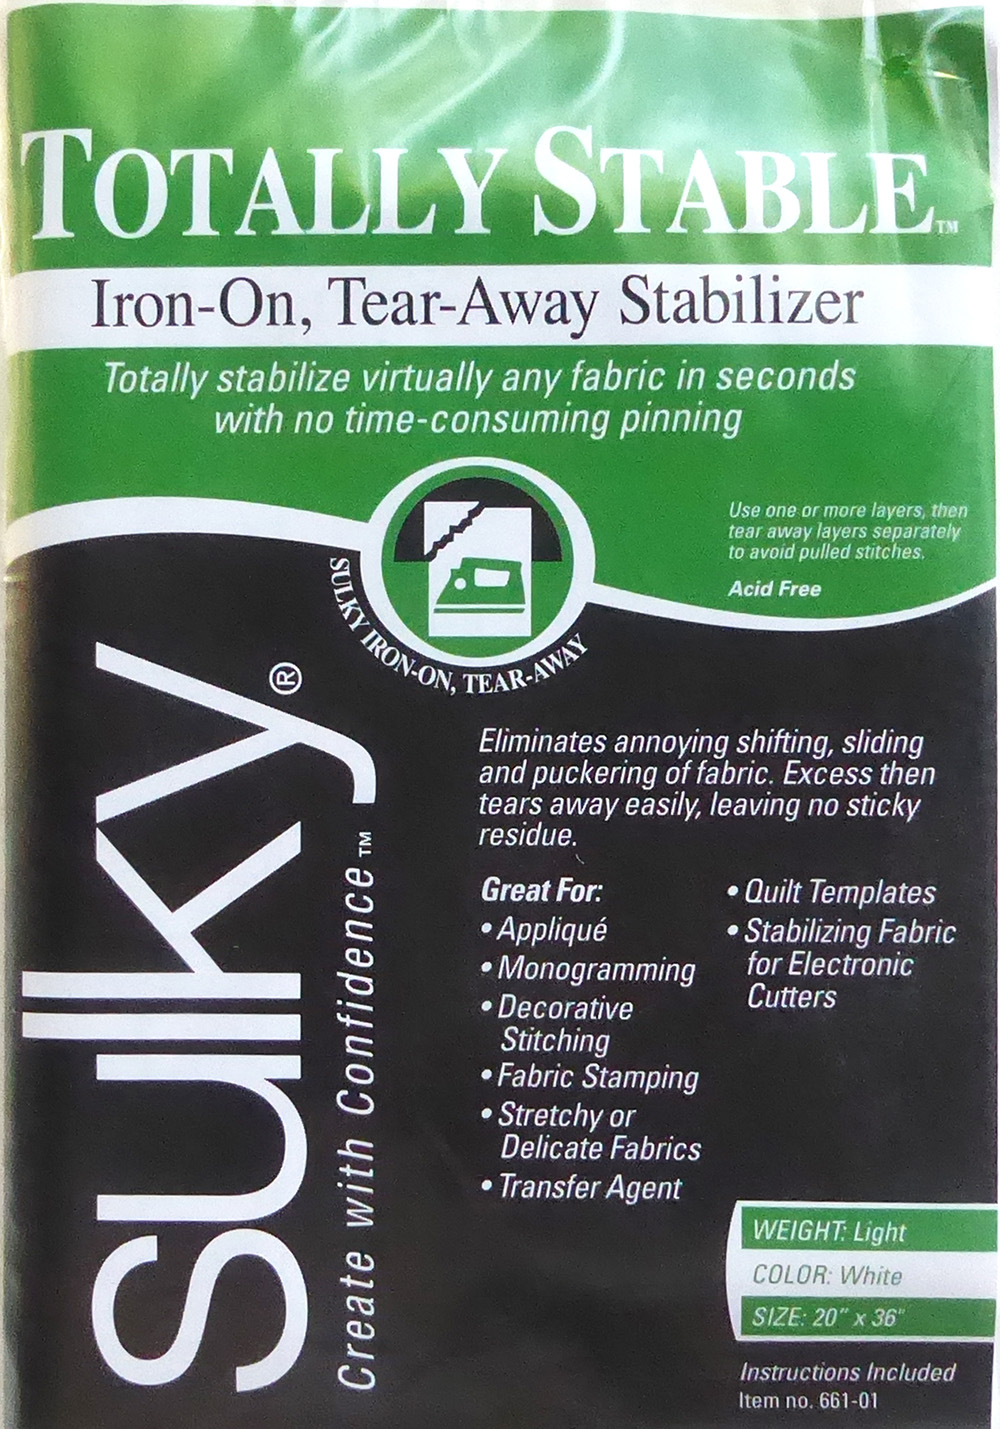 Sulky Totally Stable Iron-on, Tear-Away Stabilizer 1 Yard White